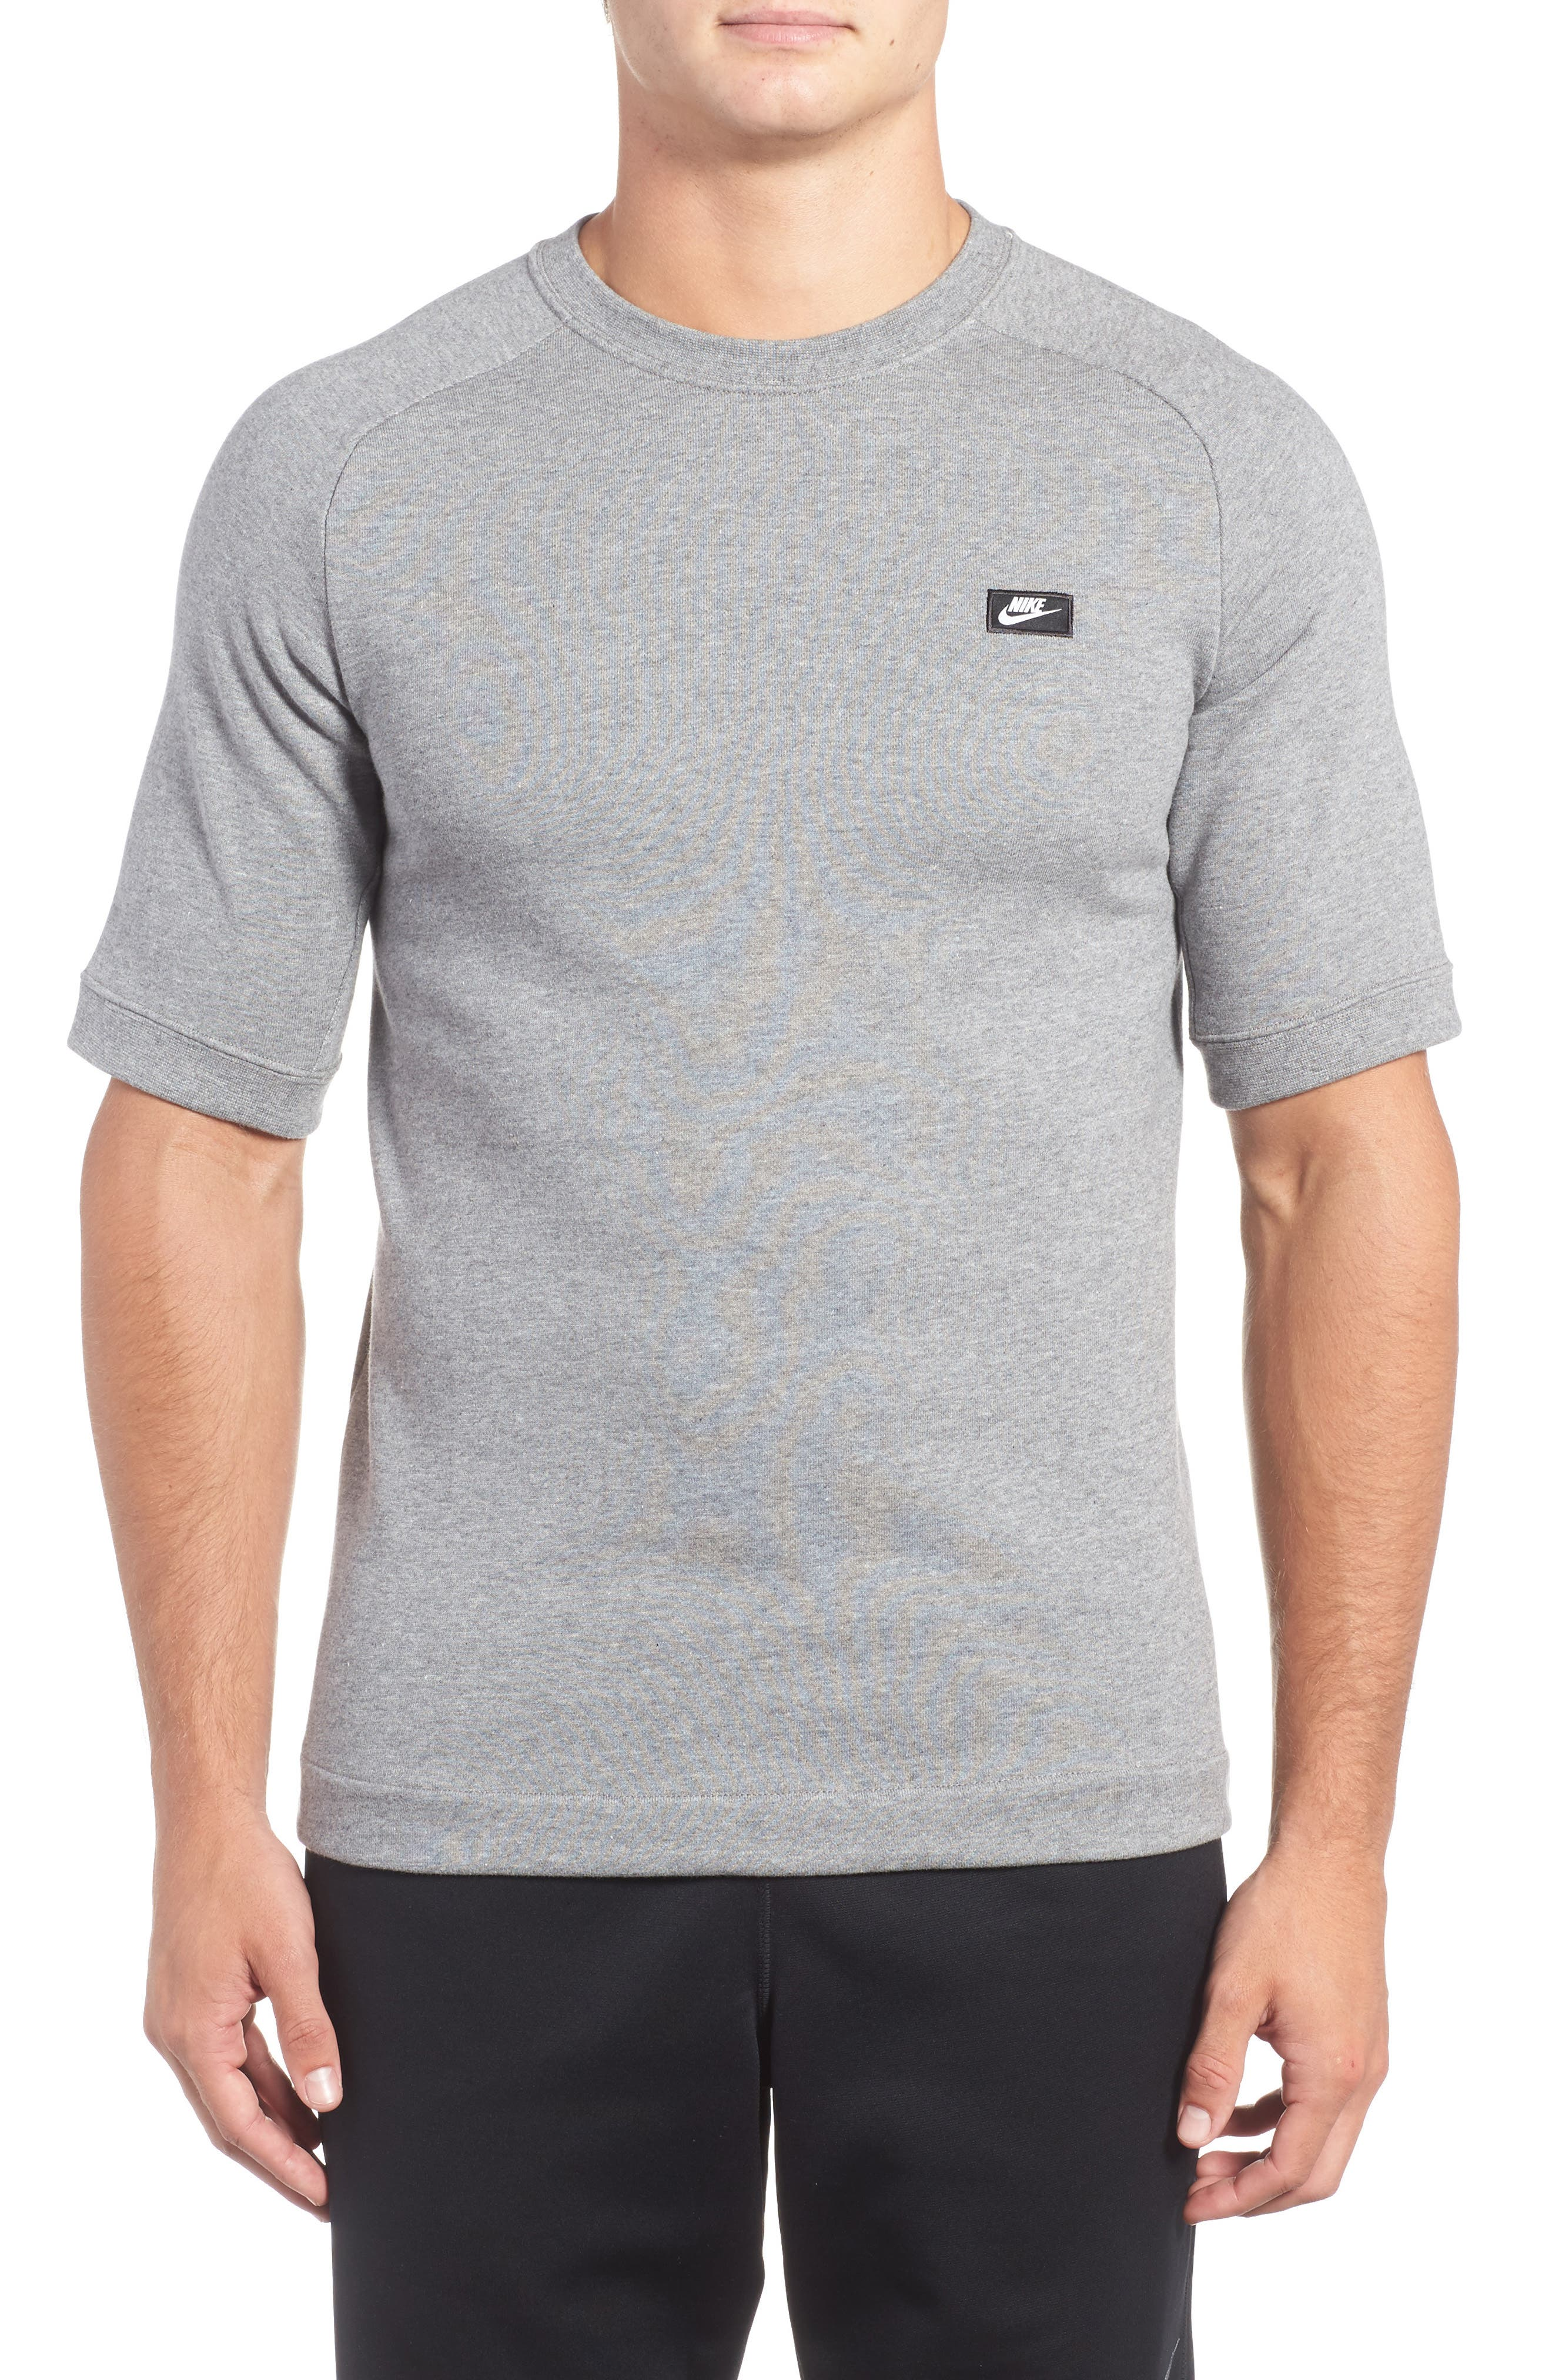 Sportswear Modern Crew T-Shirt,                         Main,                         color,